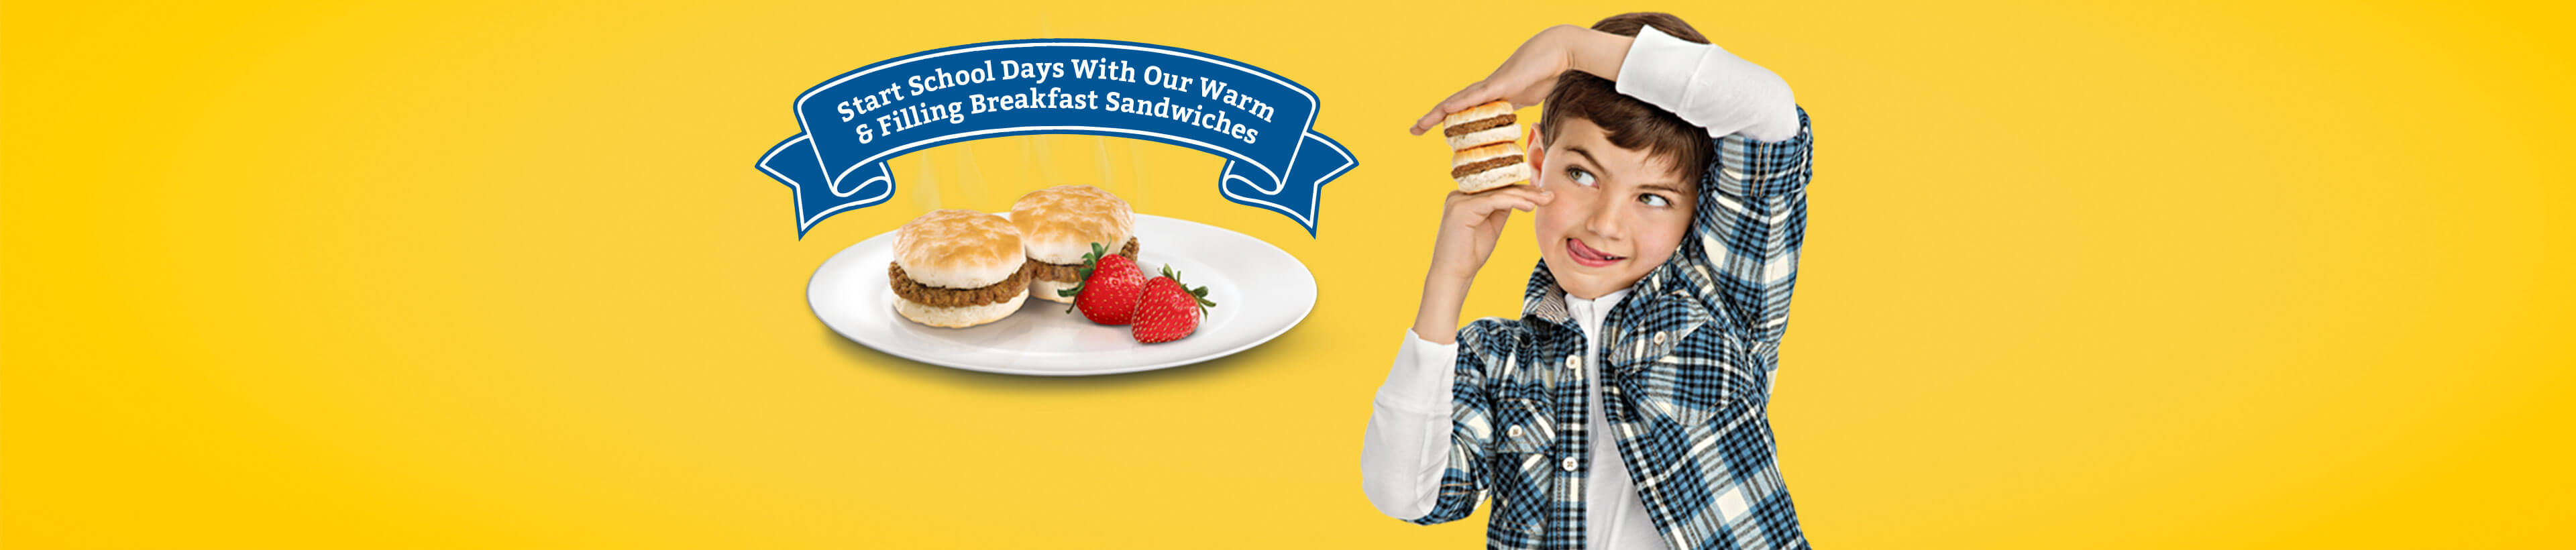 Start school days with our warm and filling breakfast sandwiches.